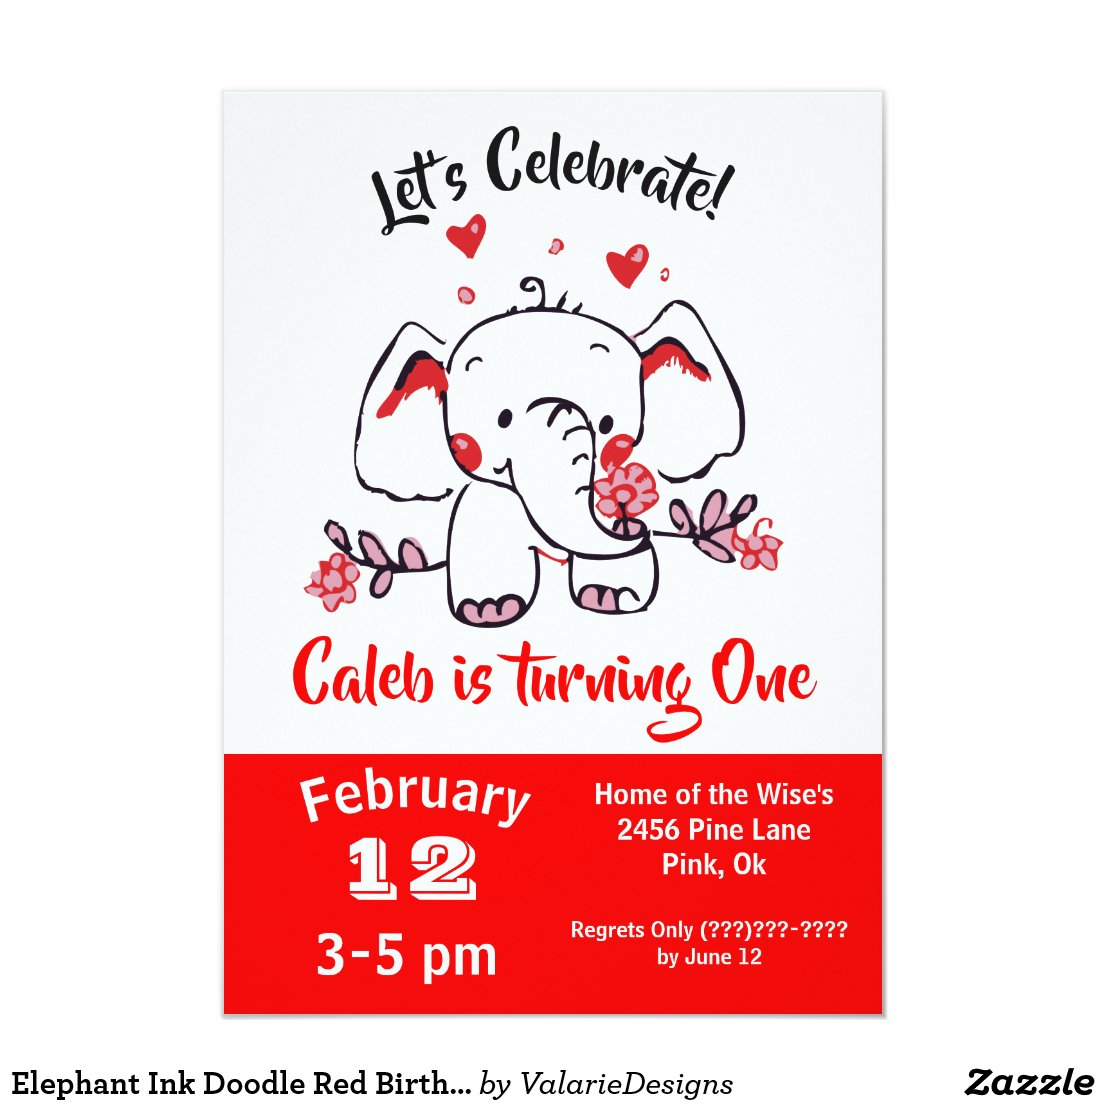 Elephant Ink Doodle Red Birthday Invitation